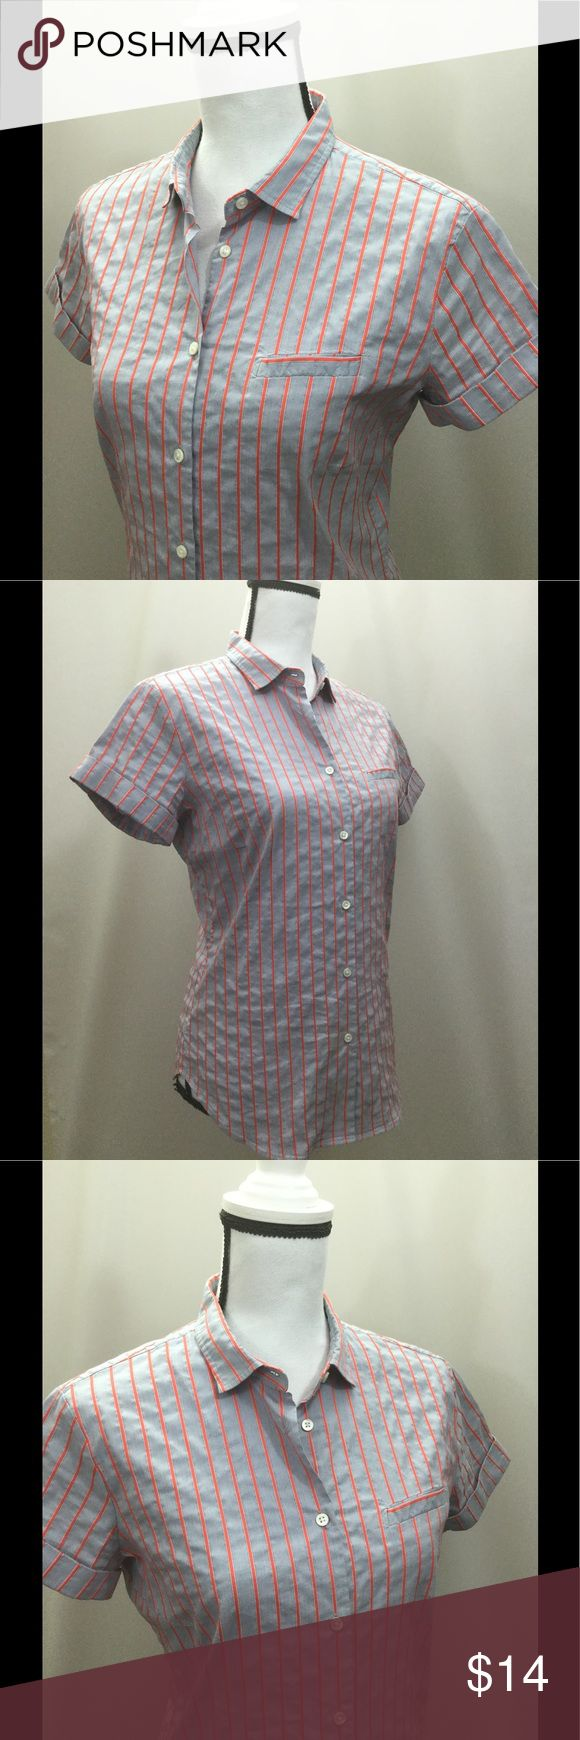 """Faconnable shirt gray orange ripple style fabric Faconnable short sleeve button down top. Size 10. Gray and orange with ripple runched style fabric. 75% cotton, 25% elastomultiester. Laying flat measurements 26-1/2"""" length, 19"""" width pit to pit. Sleeve length 1-1/2"""" from pit. Non-smoking household. Faconnable Tops Button Down Shirts"""